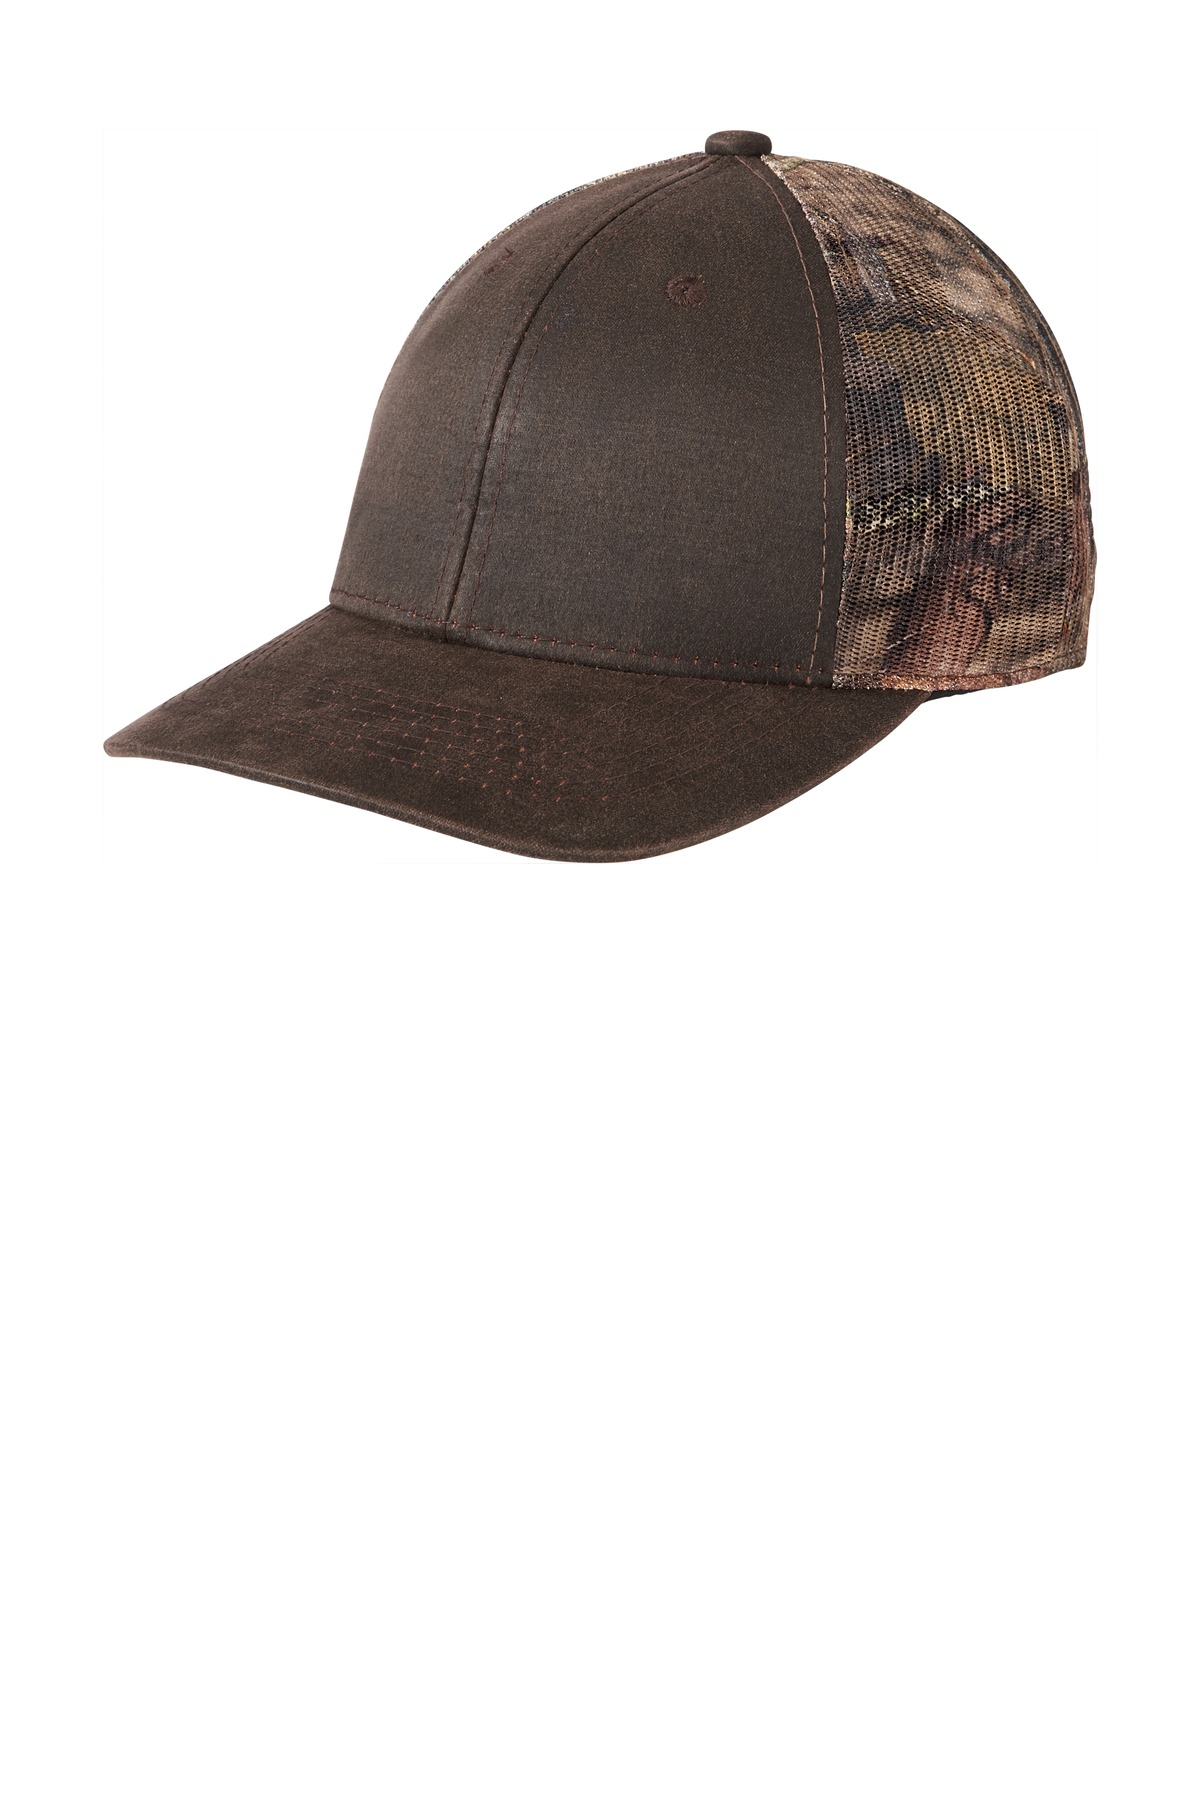 Port Authority  ®  Pigment Print Camouflage Mesh Back Cap C891 - Mossy Oak Break Up Country/ Brown